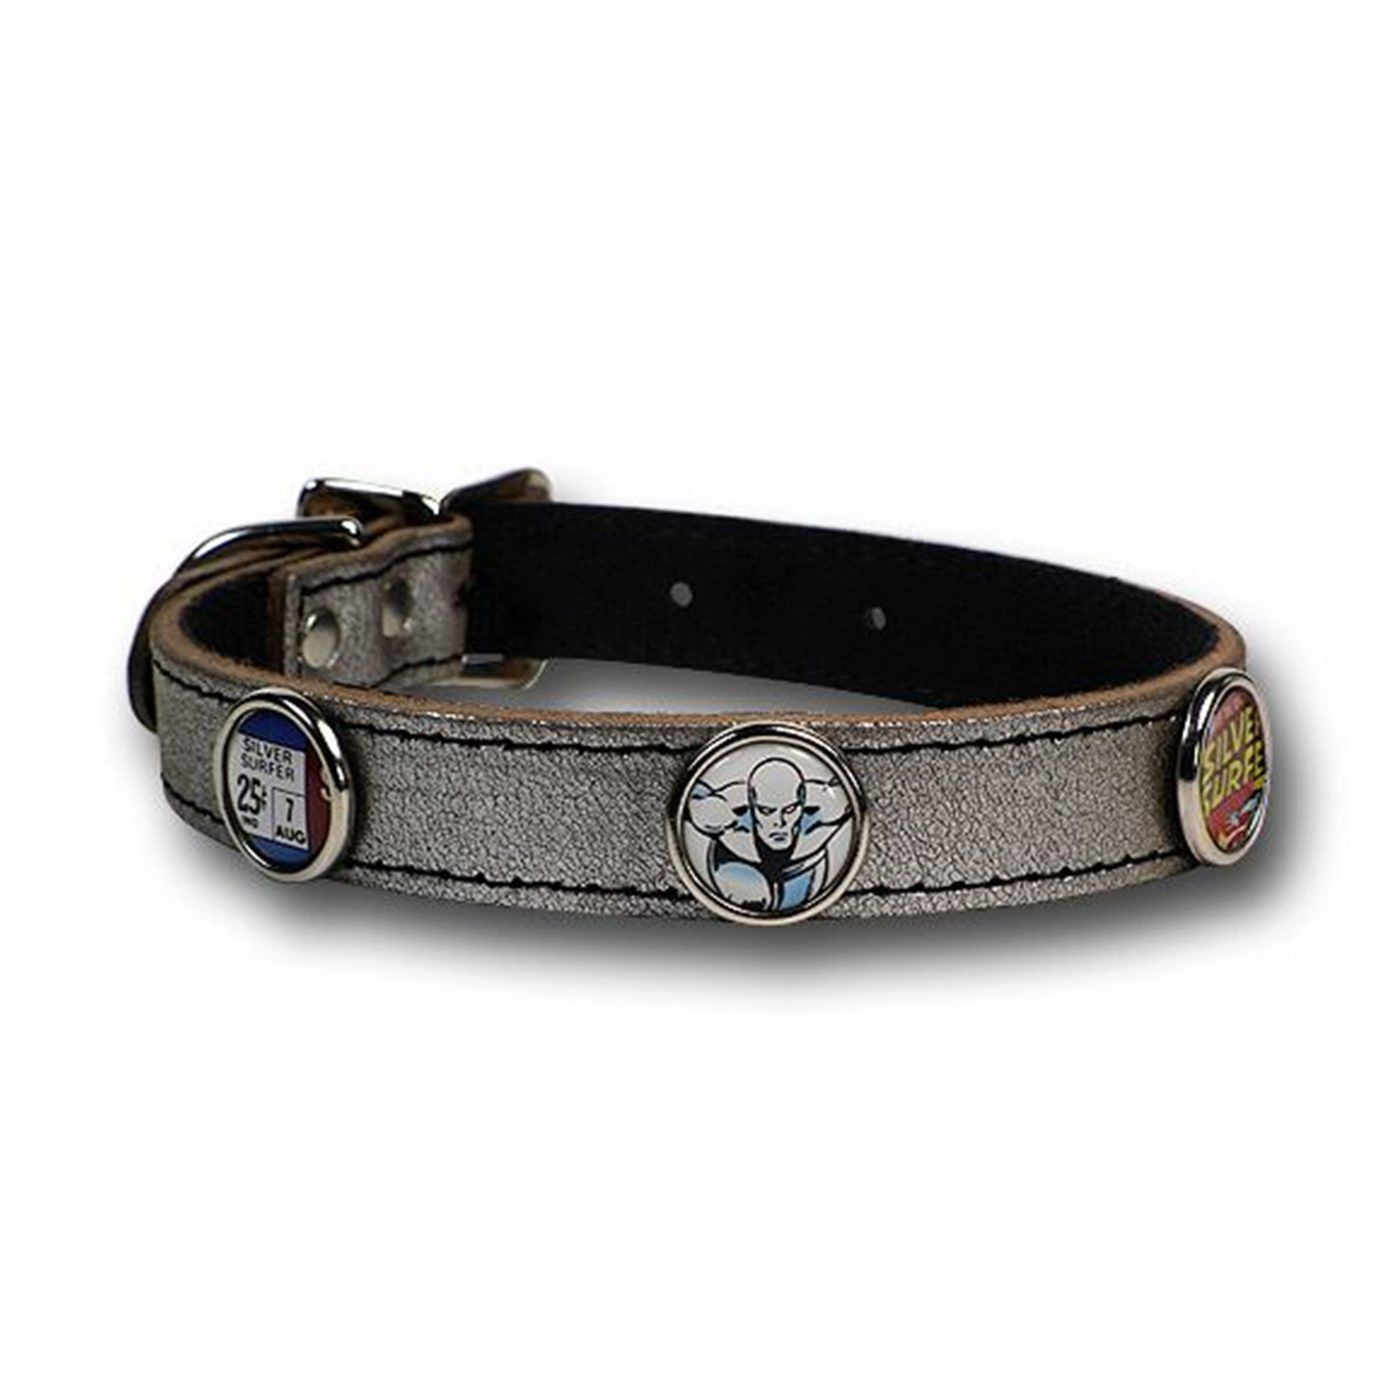 Silver Surfer Dog Collar/Leash Combo